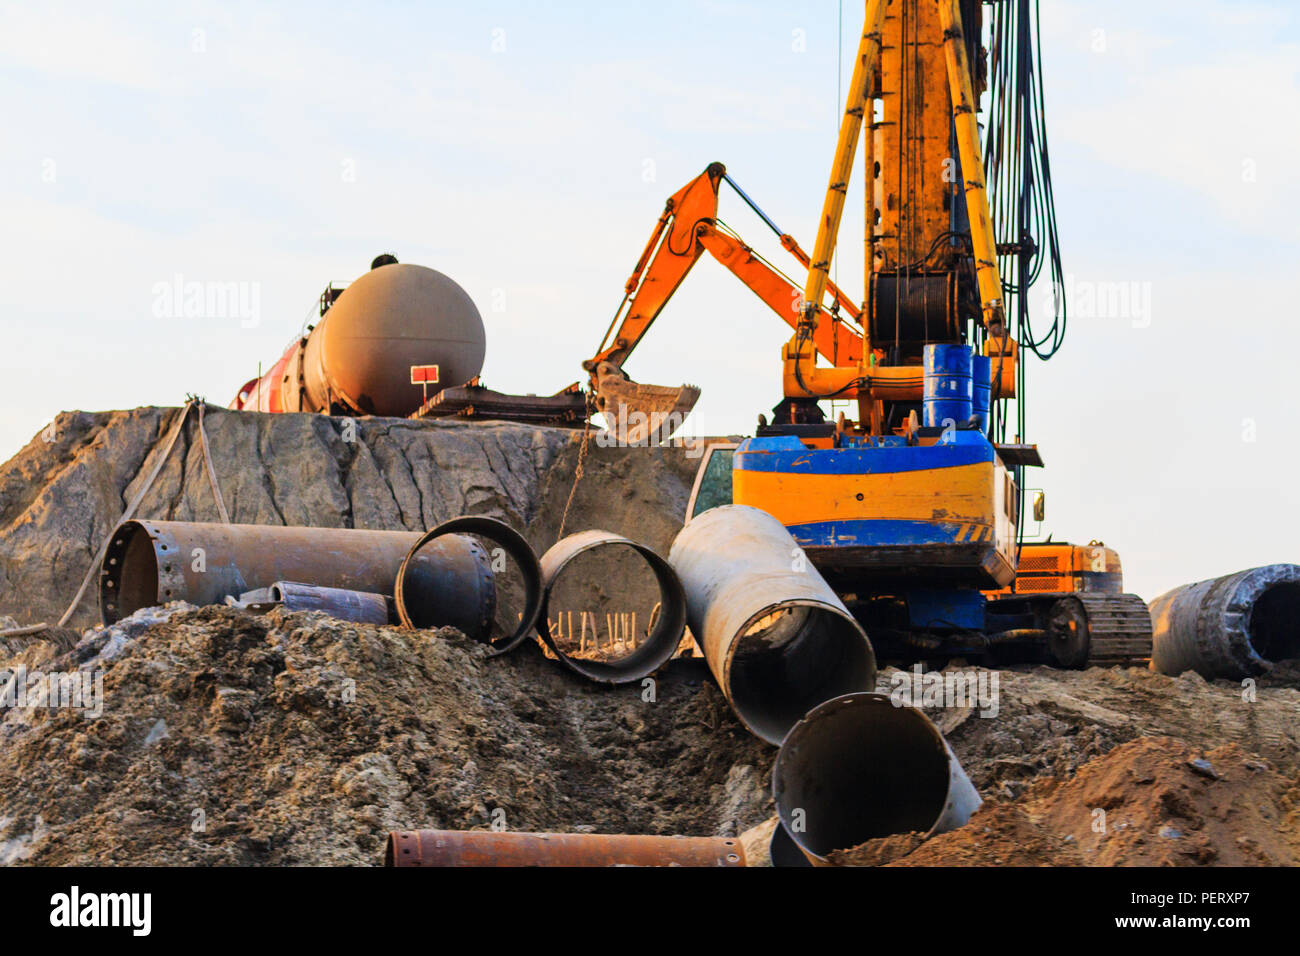 construction of a new railway - Stock Image